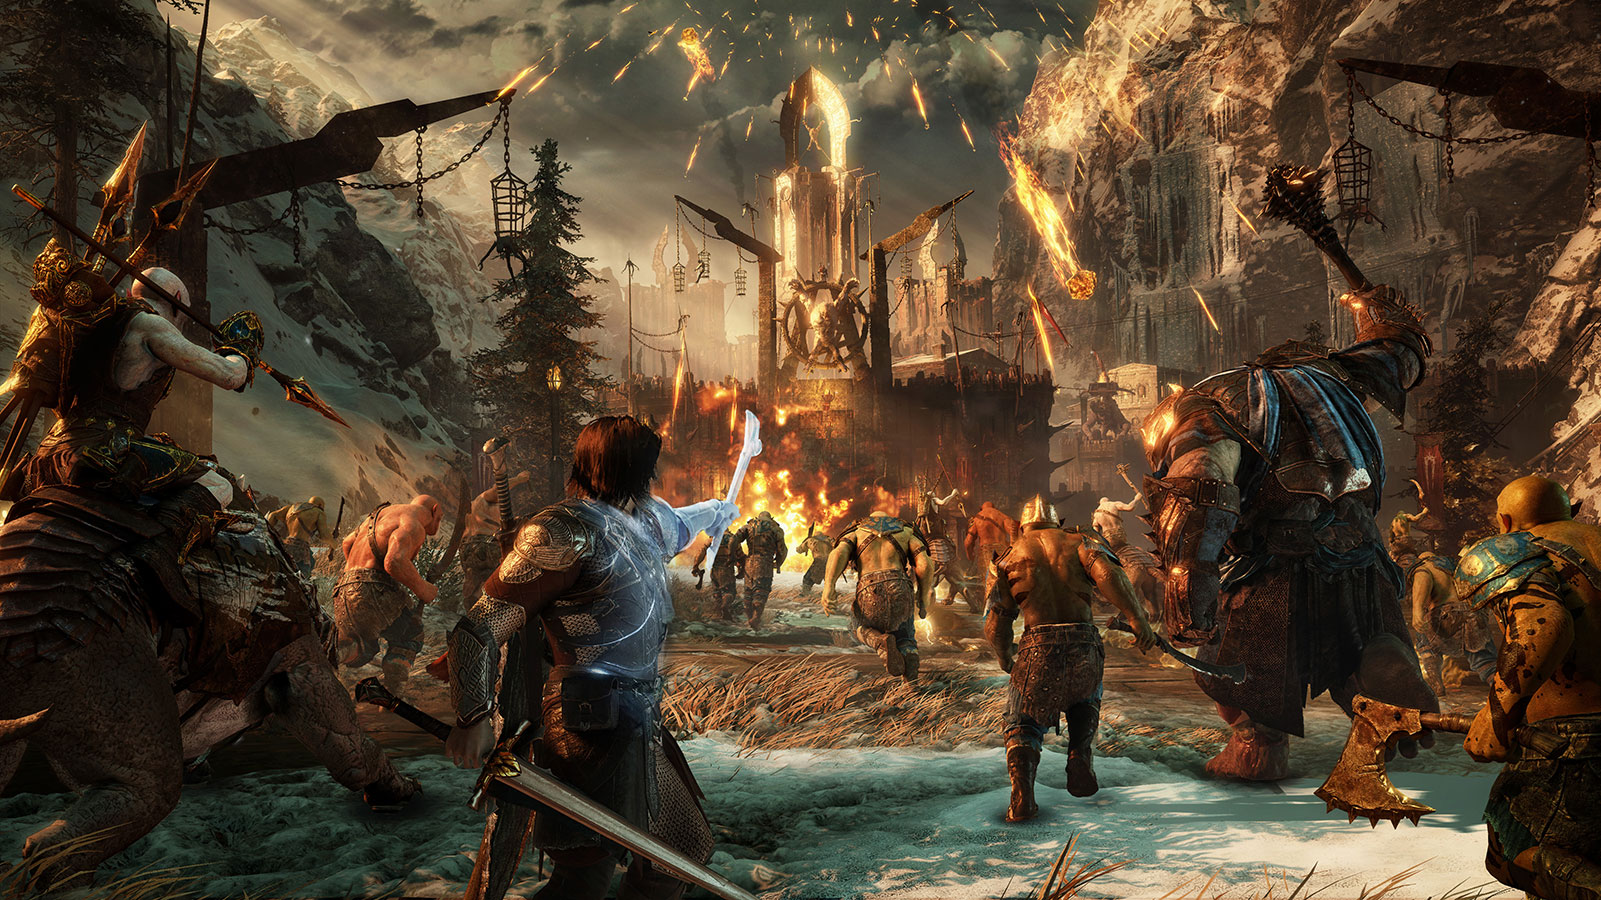 Middle Earth: Shadow of War review: a smart expansion on its predecessor, but still wanting in areas